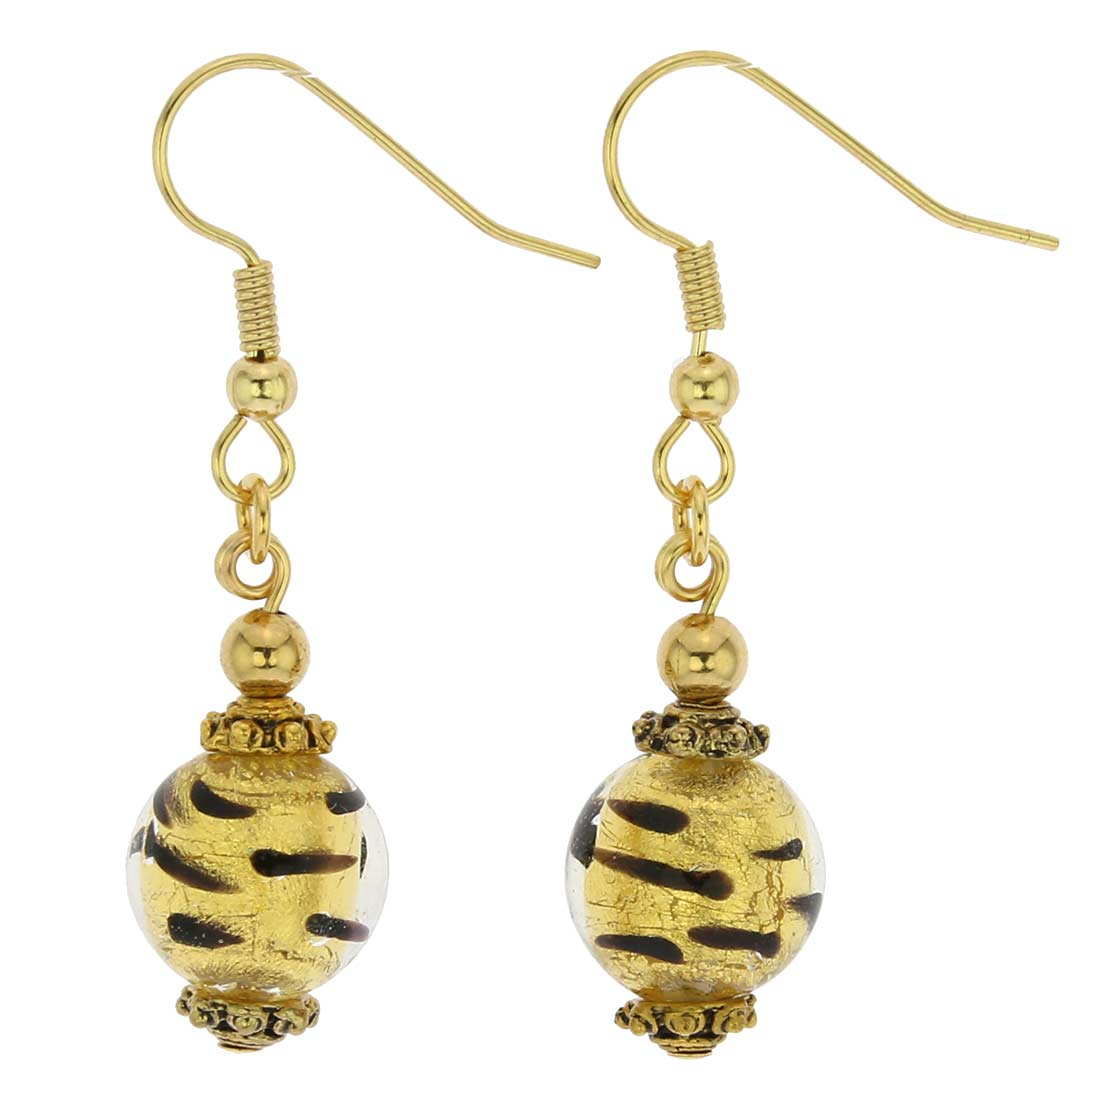 Antico Tesoro Balls Earrings - Spotted Gold